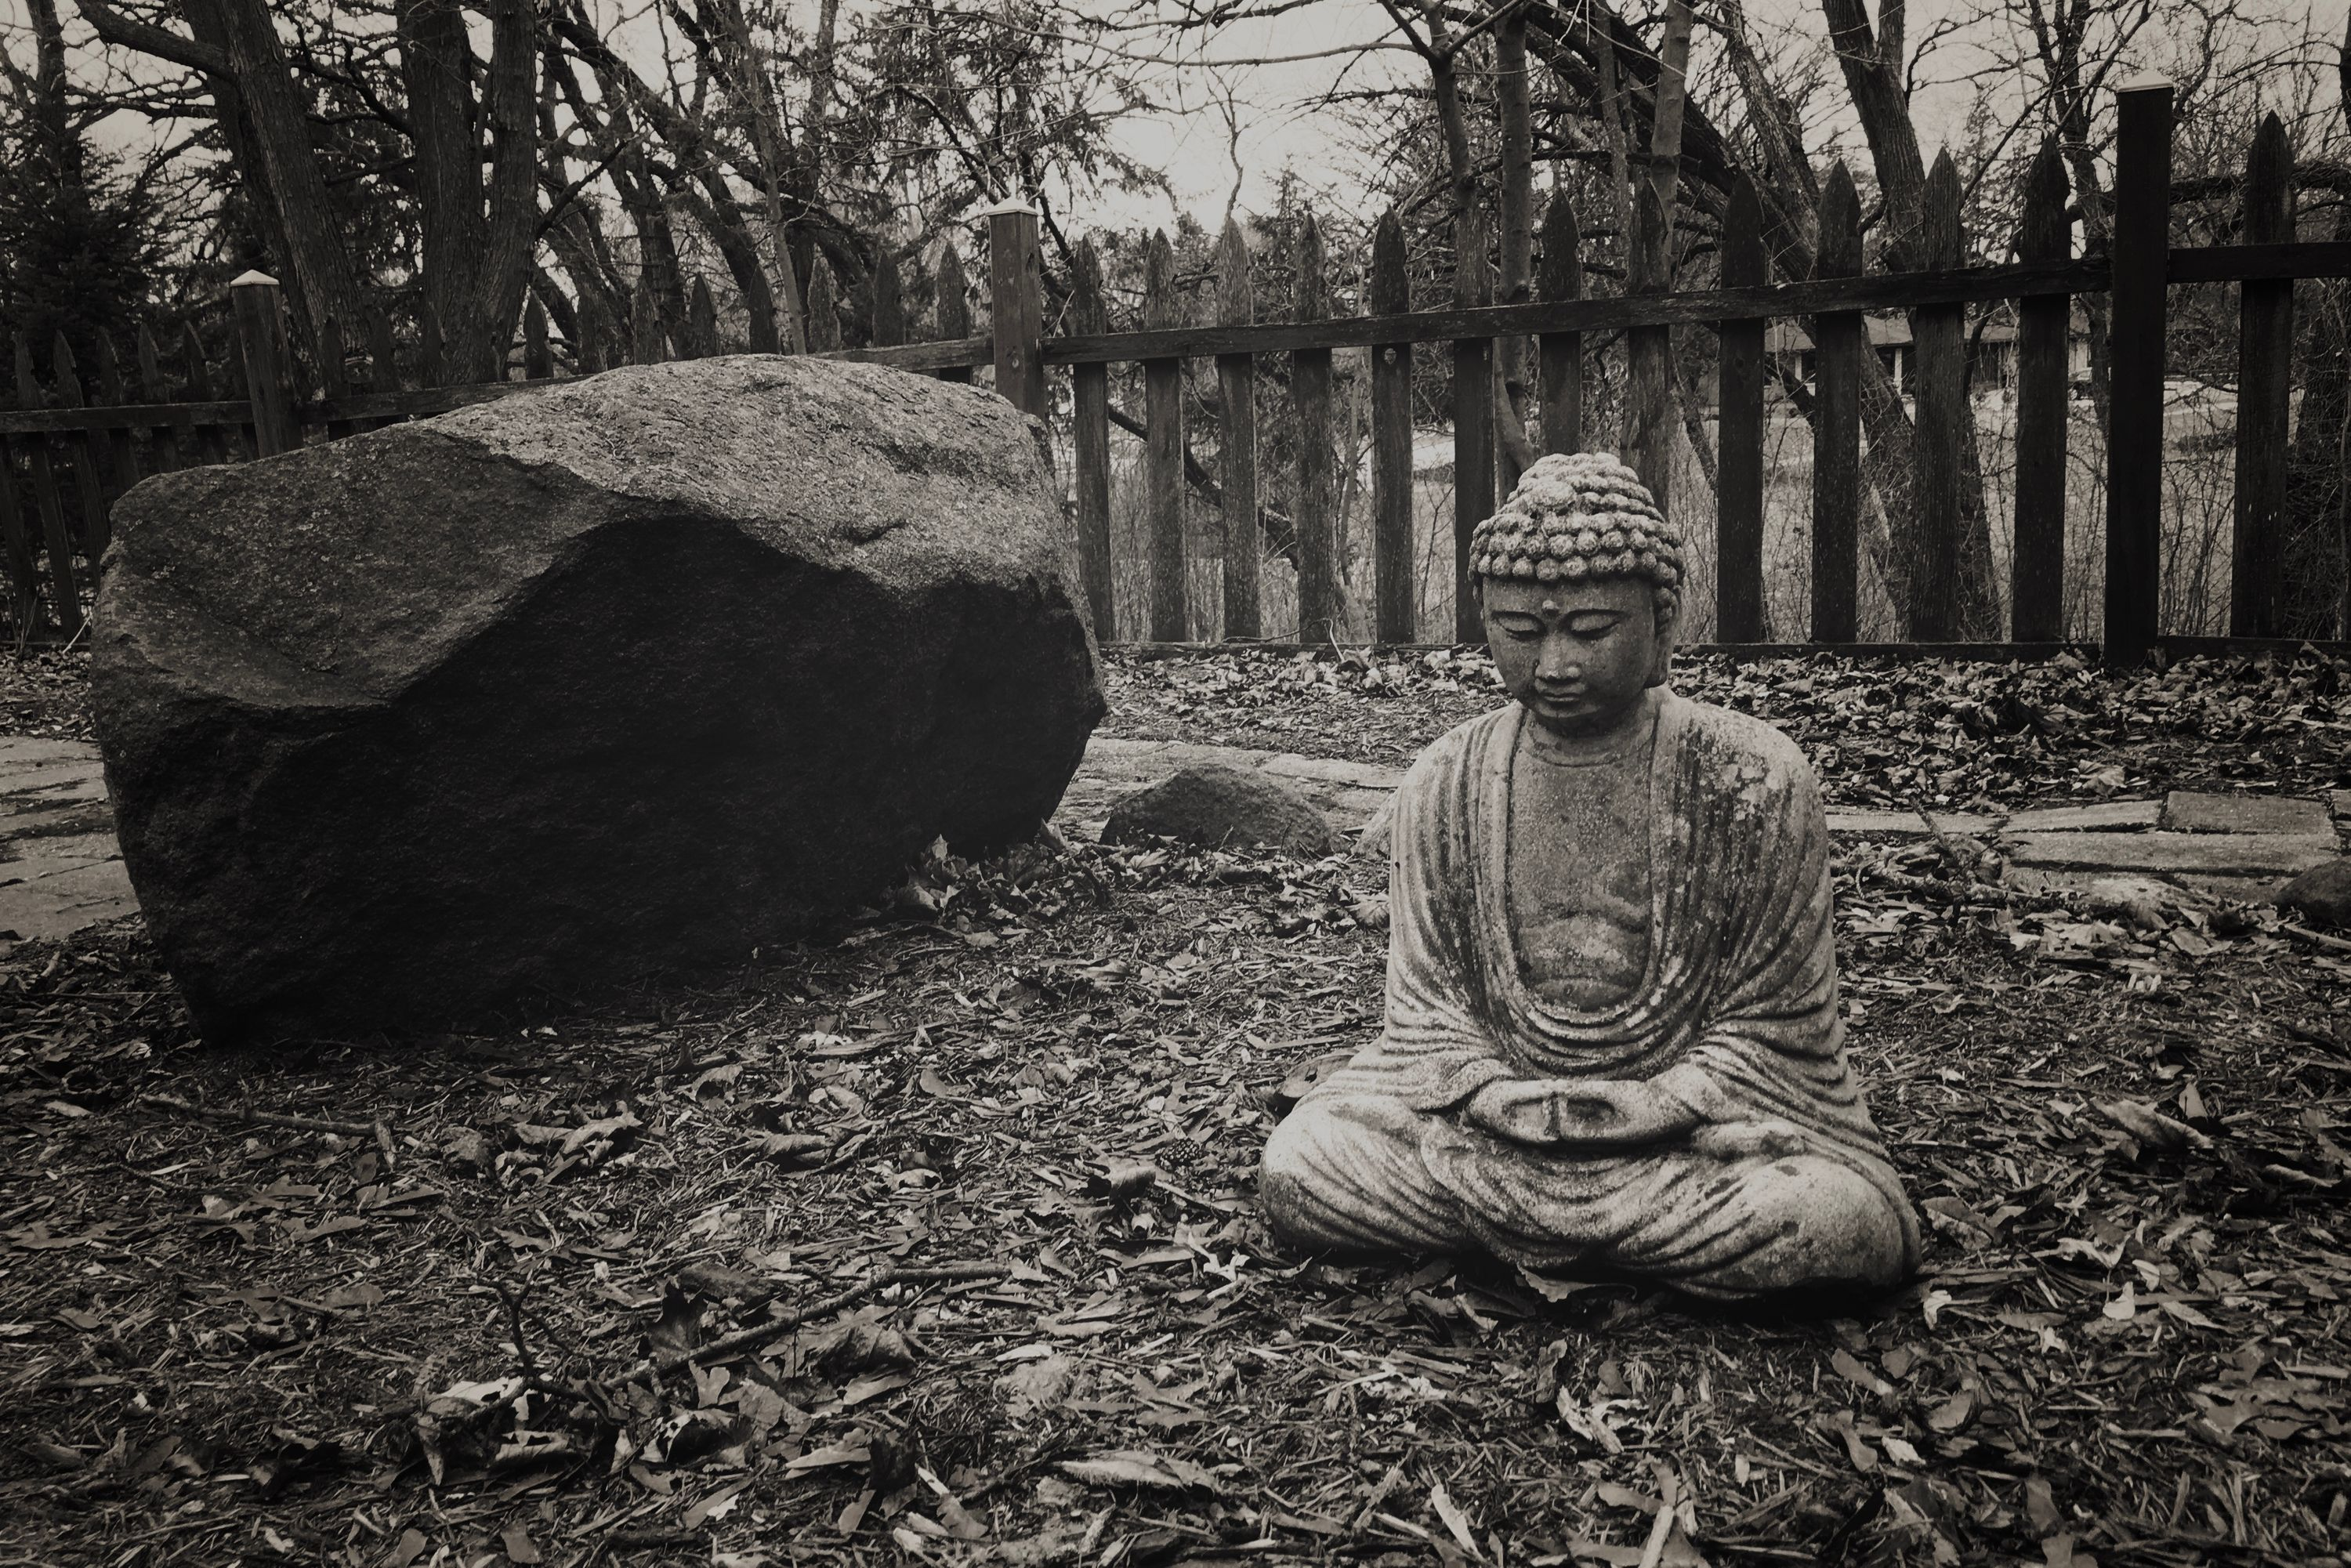 In the garden, he sits, between a rock and the open world